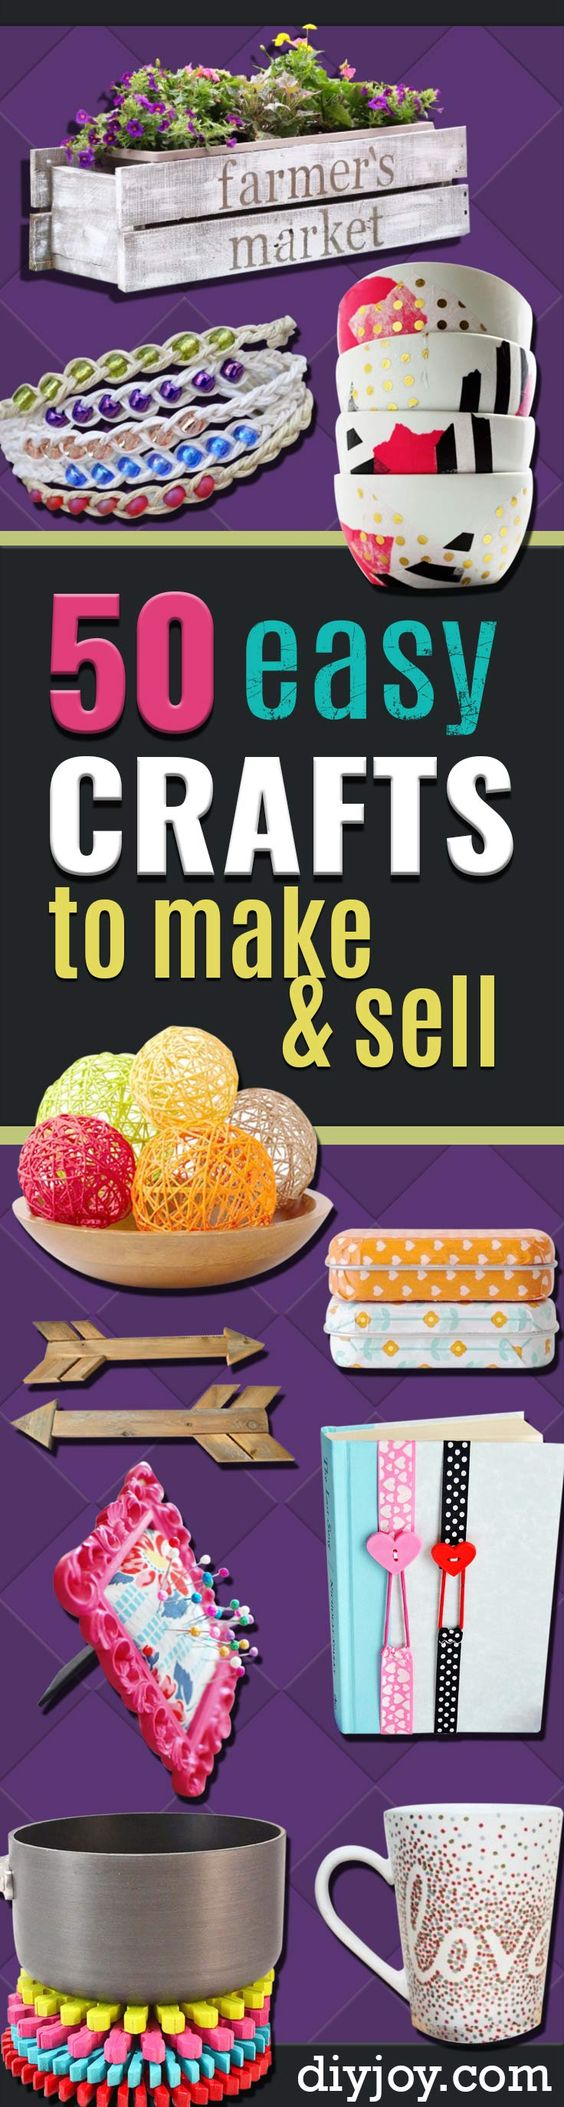 50 easy crafts to make and sell homemade make and sell for Most popular diy crafts